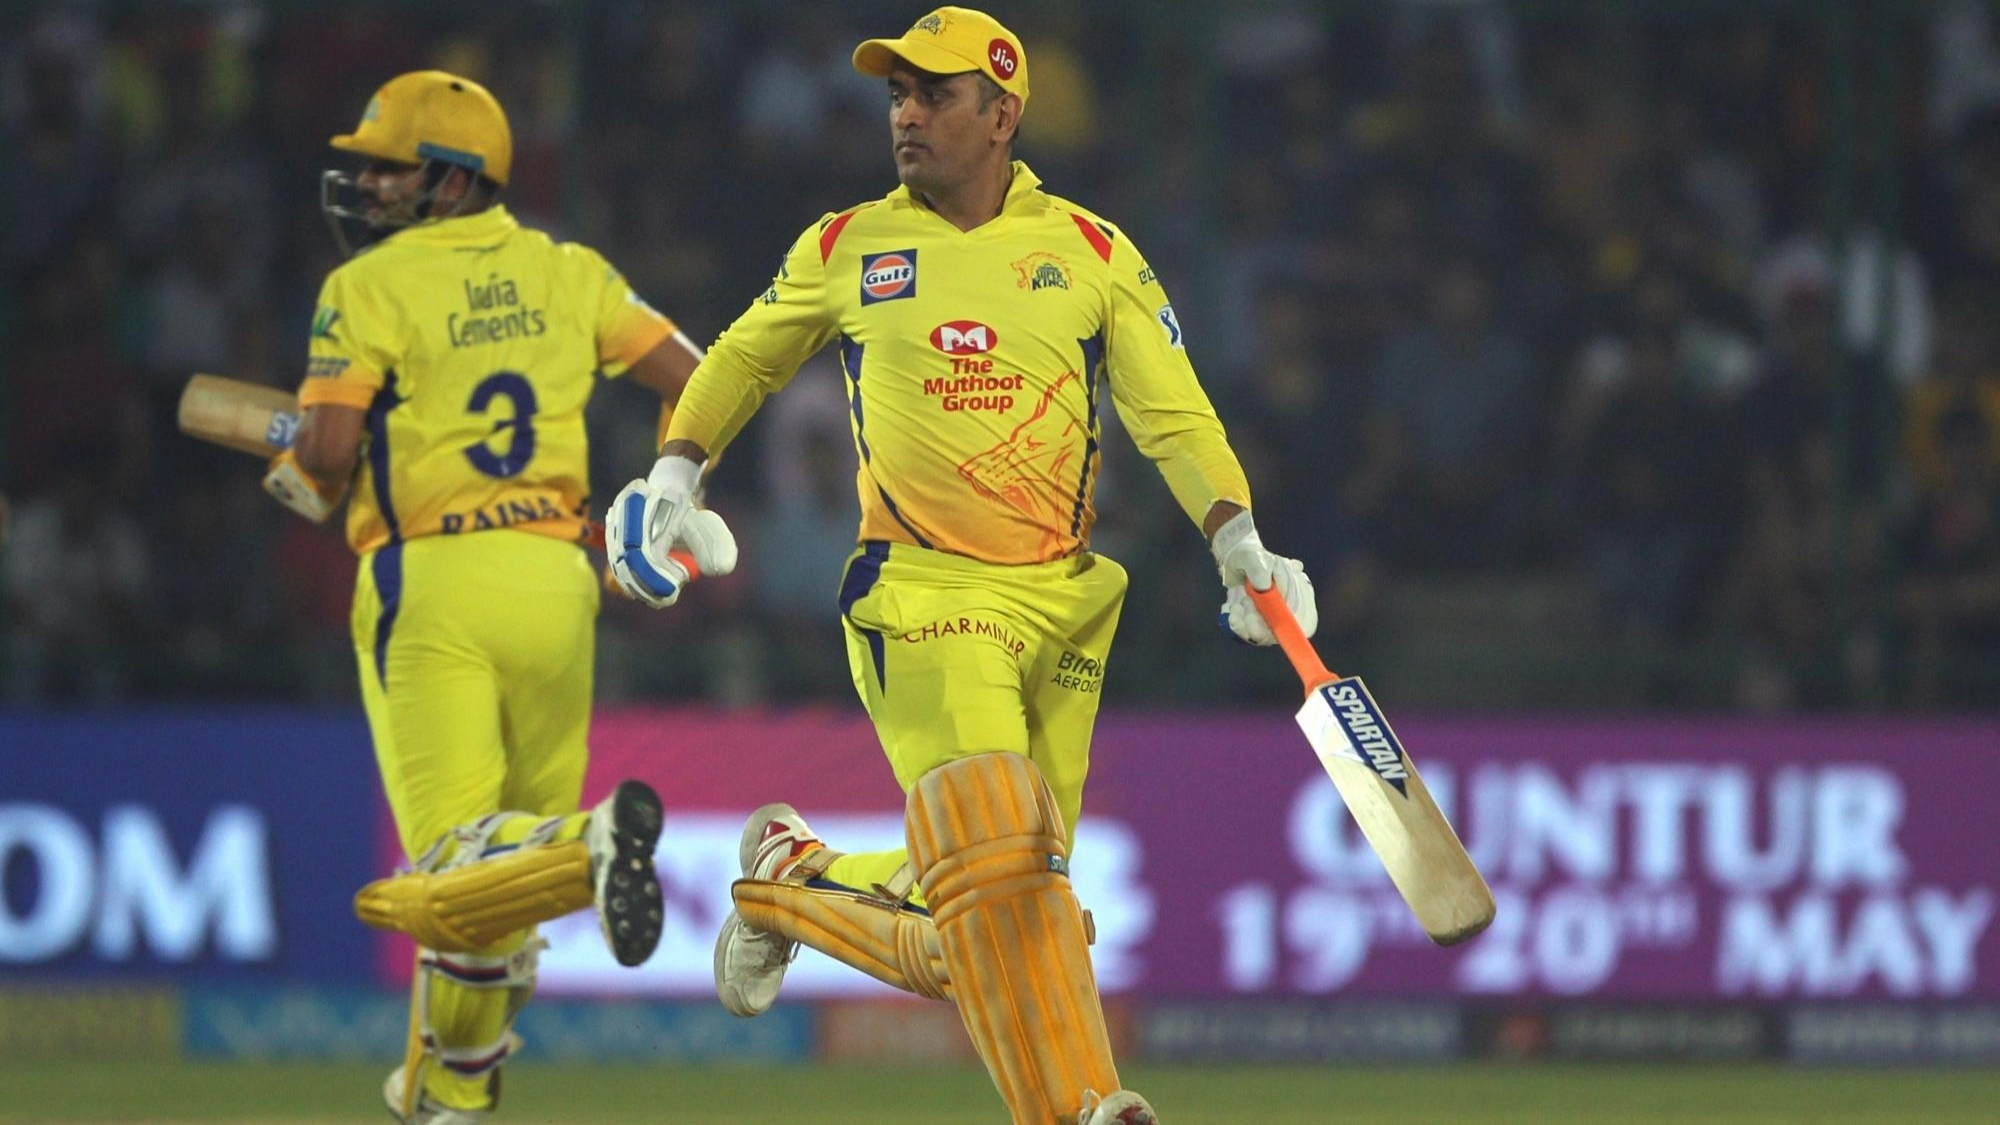 IPL 2018: MS Dhoni presented the Pune groundsmen with cheque worth Rs. 20,000